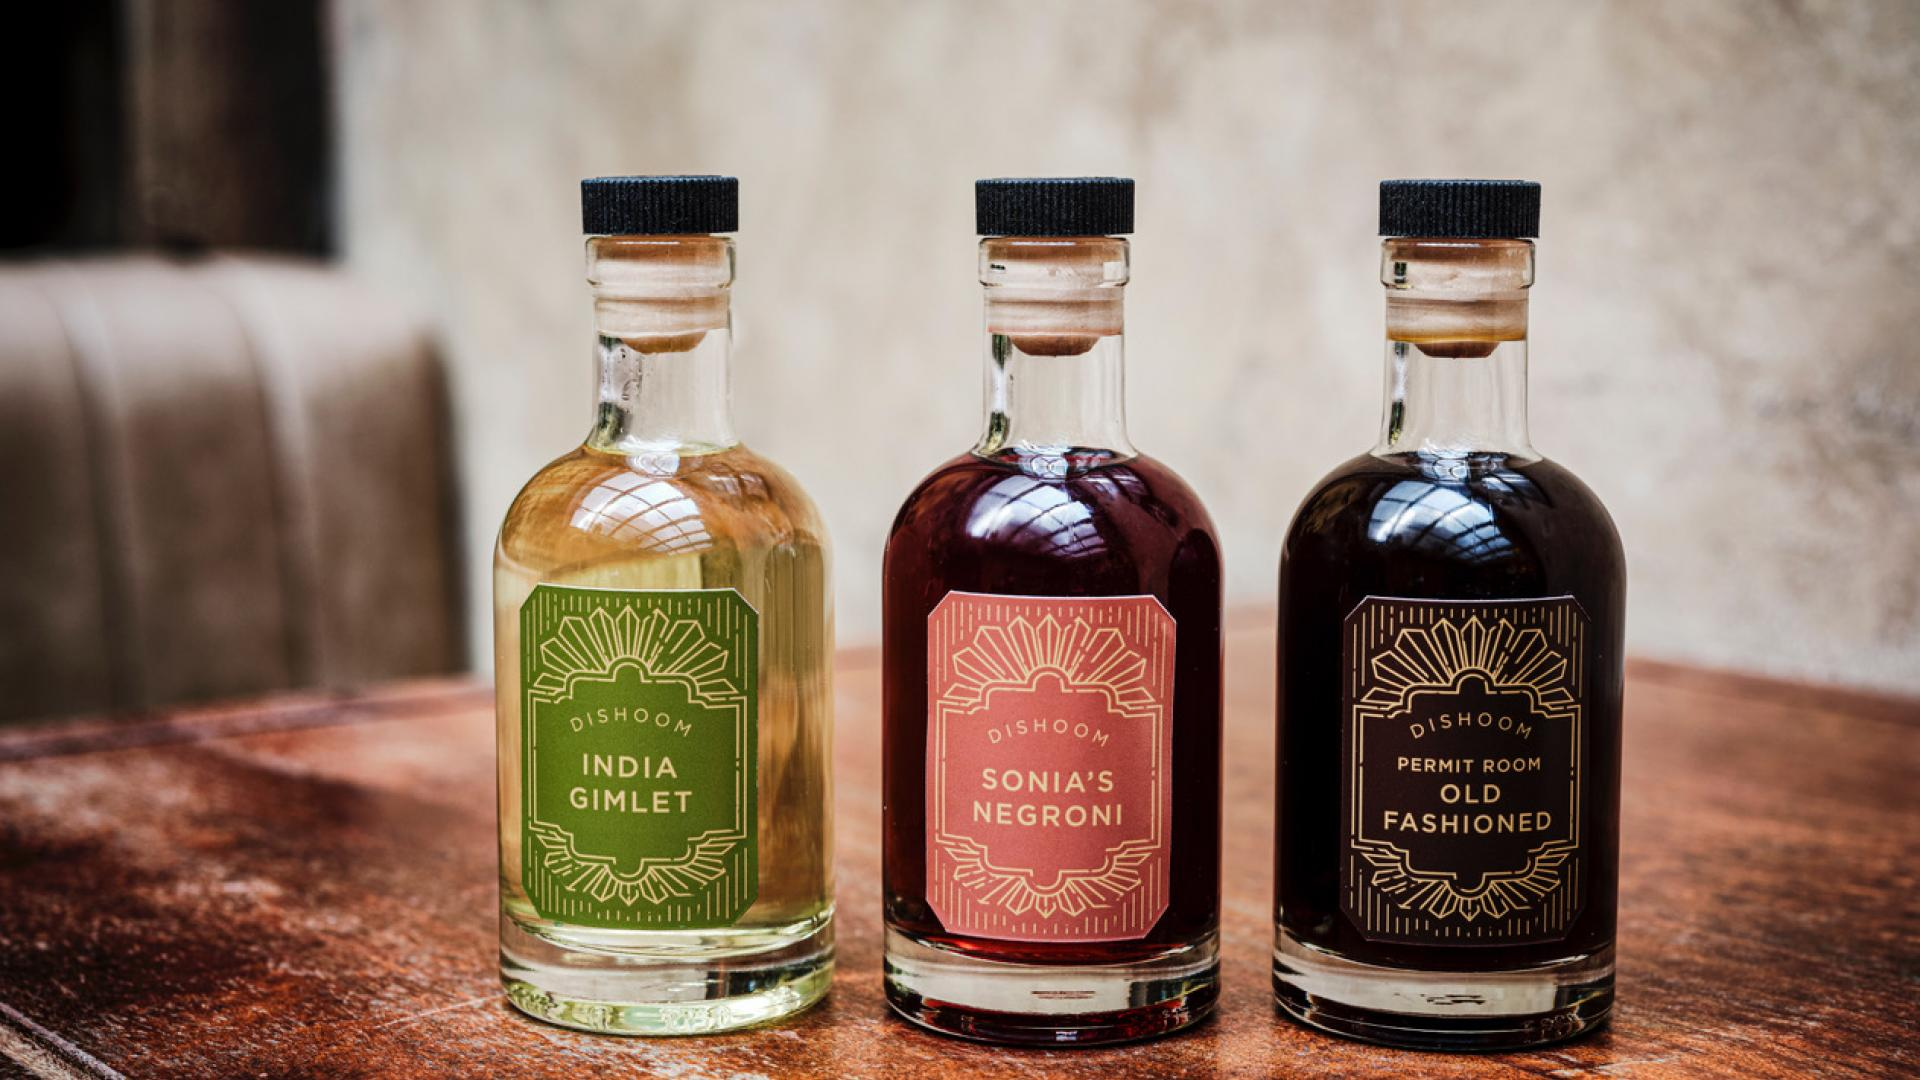 Home cocktail kit delivery | Dishoom's Permit Room Collection